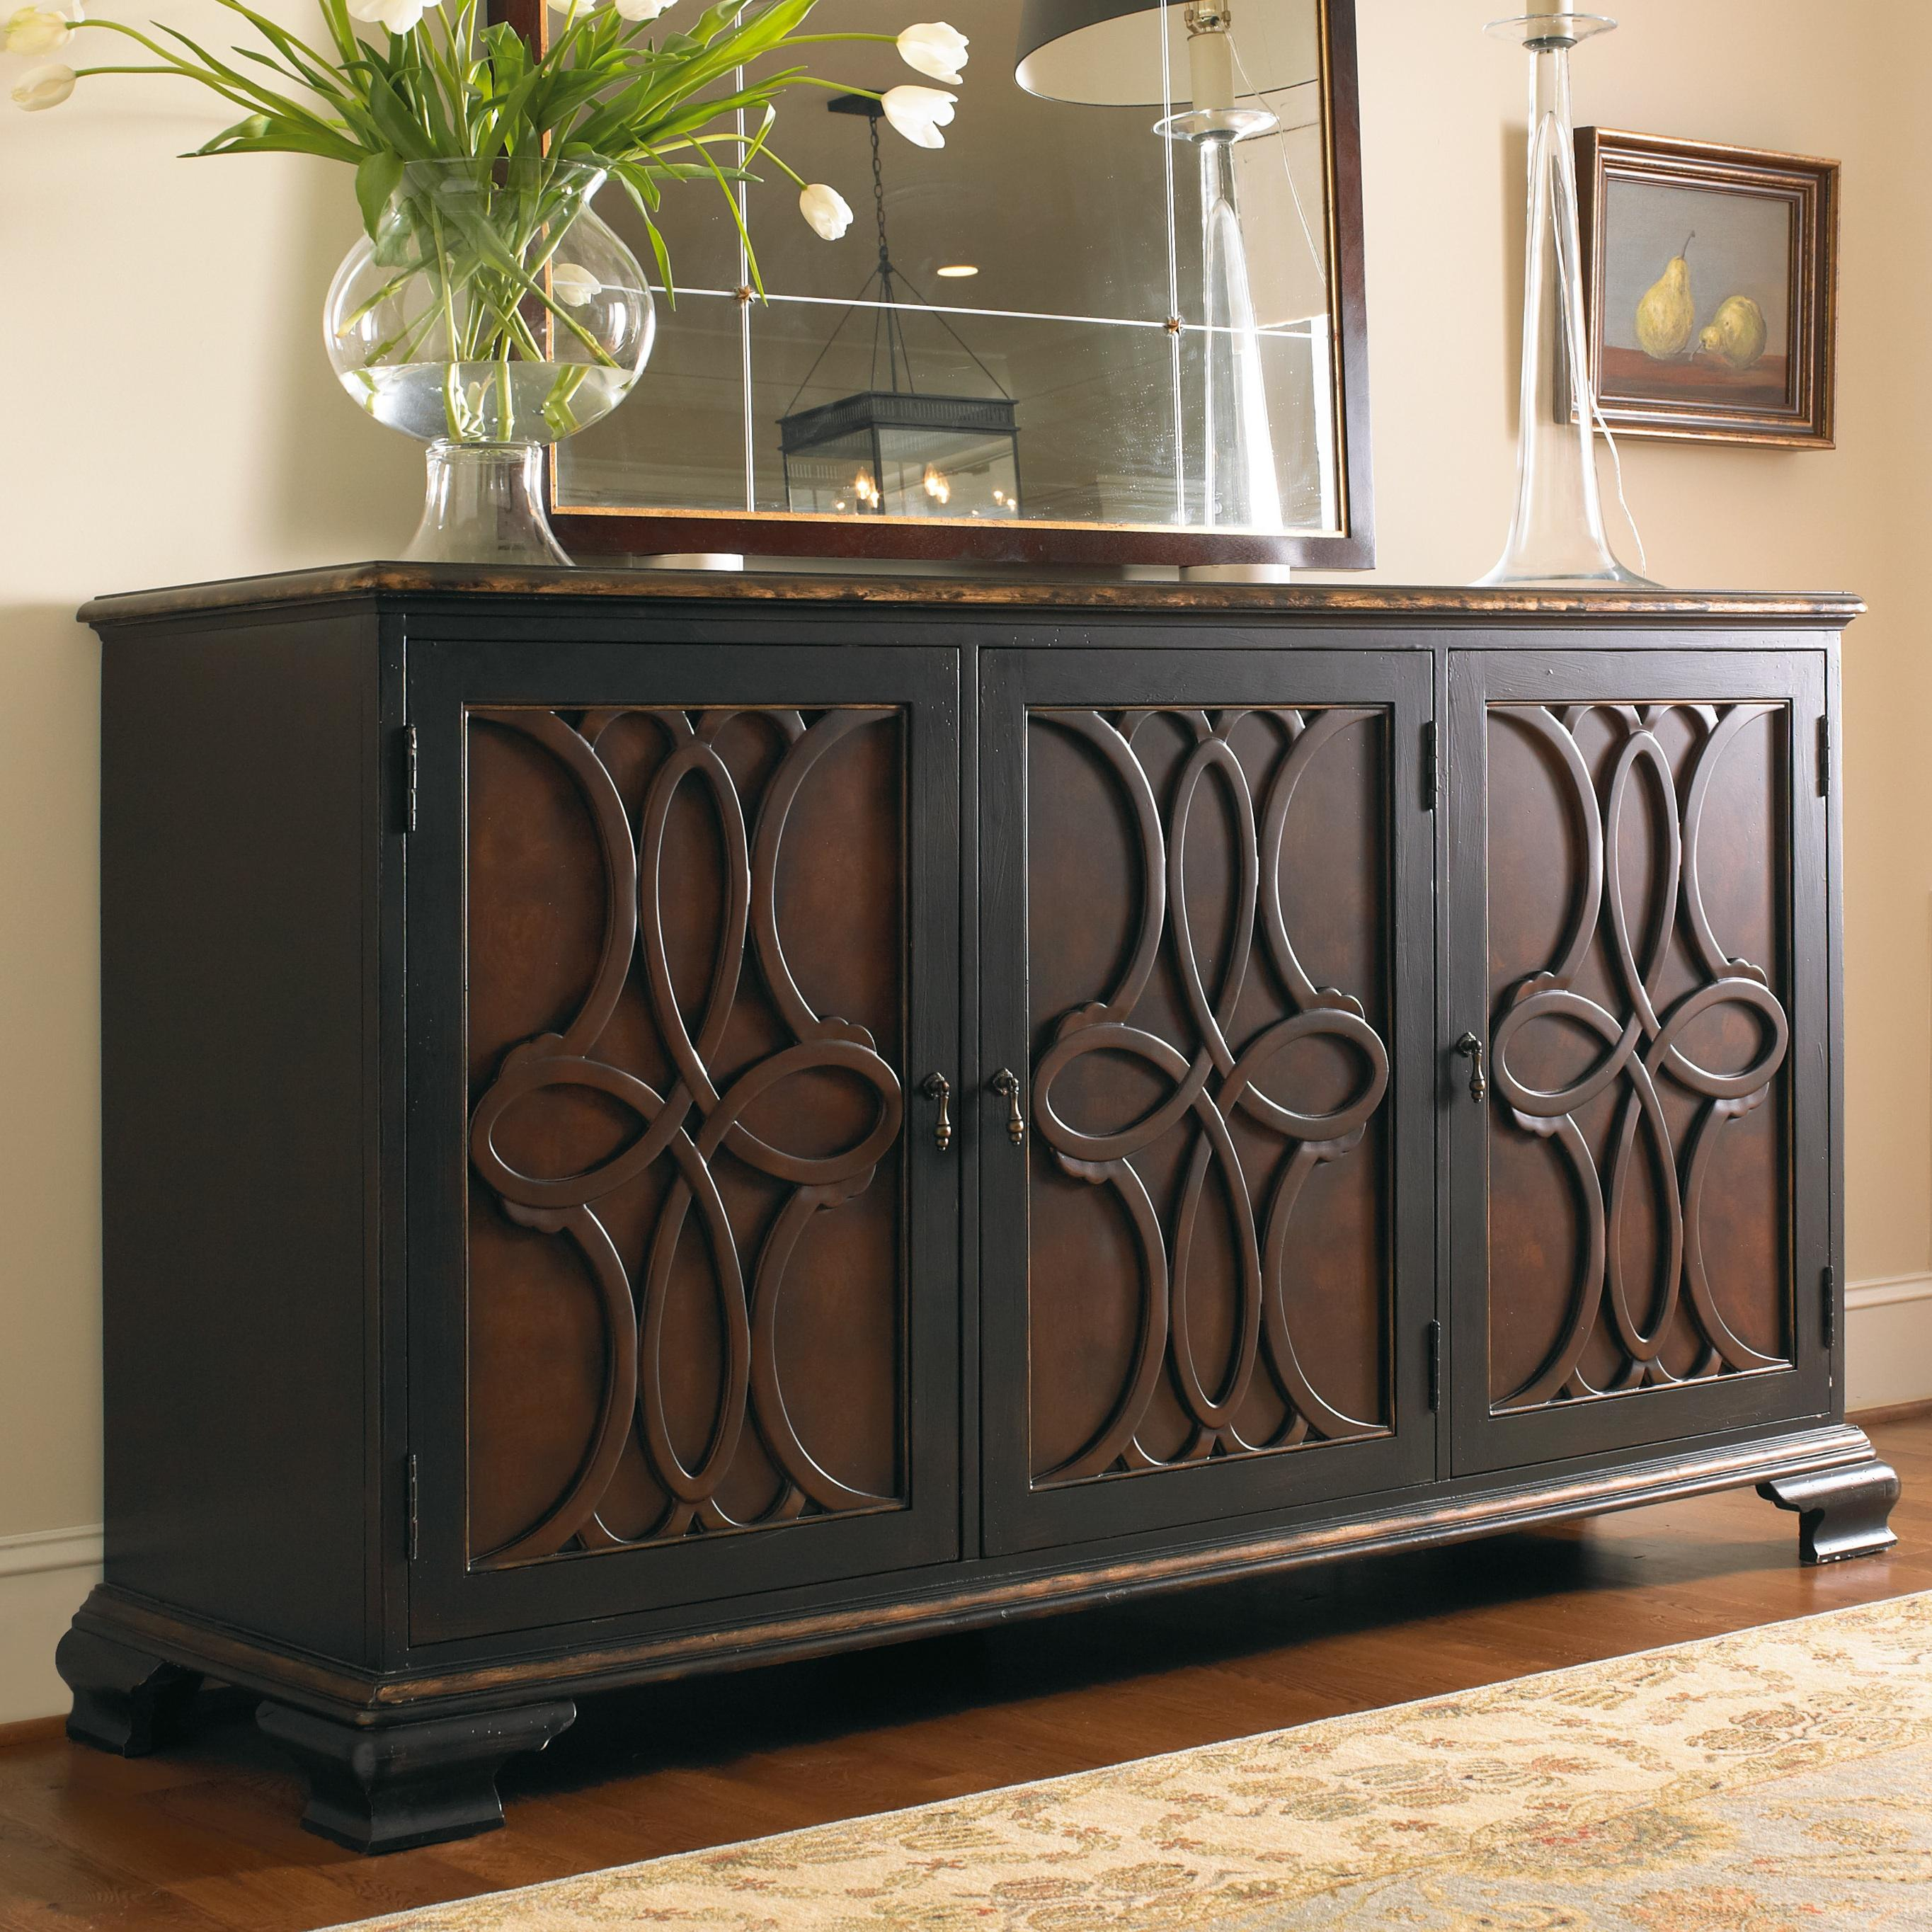 hamilton home living room accents two tone credenza with raised applique door fronts rotmans. Black Bedroom Furniture Sets. Home Design Ideas